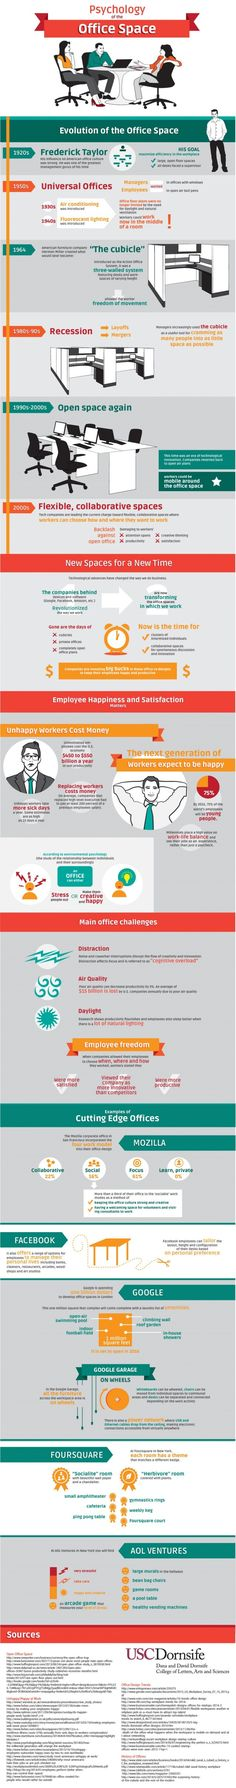 Cool Infographic: Psychology of the Office Space - SocialFish